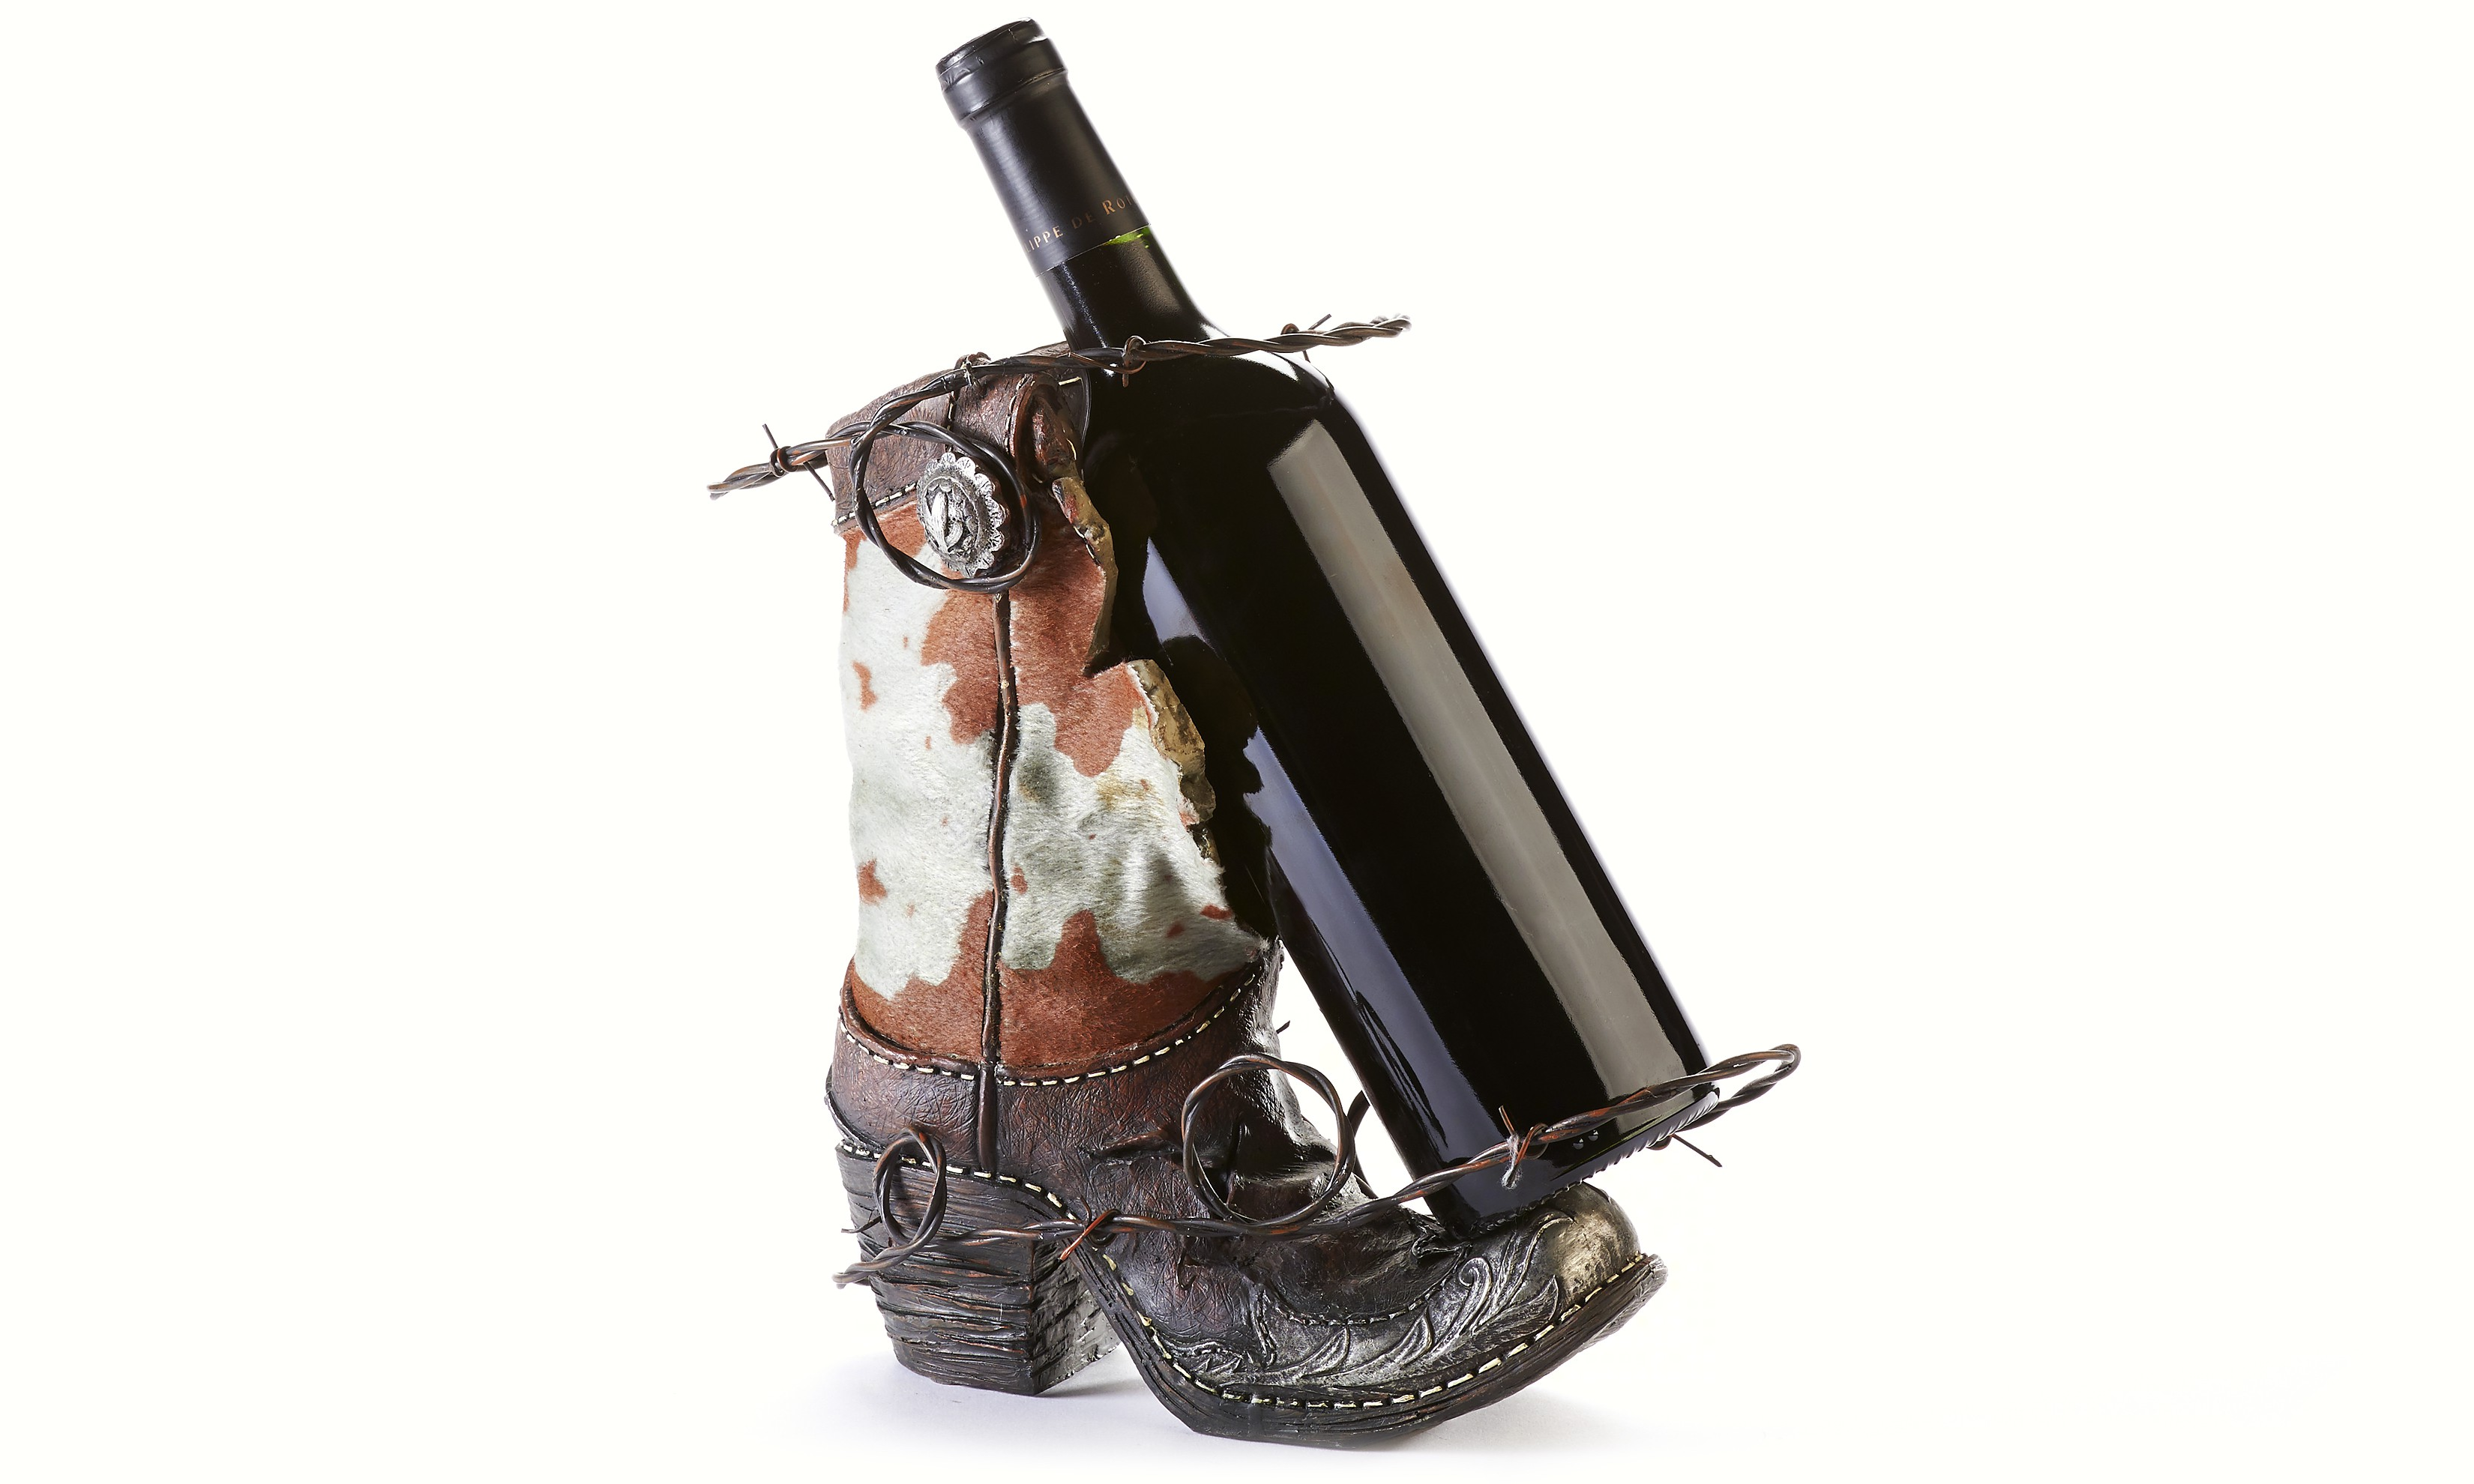 Boot Wine Bottle Holder